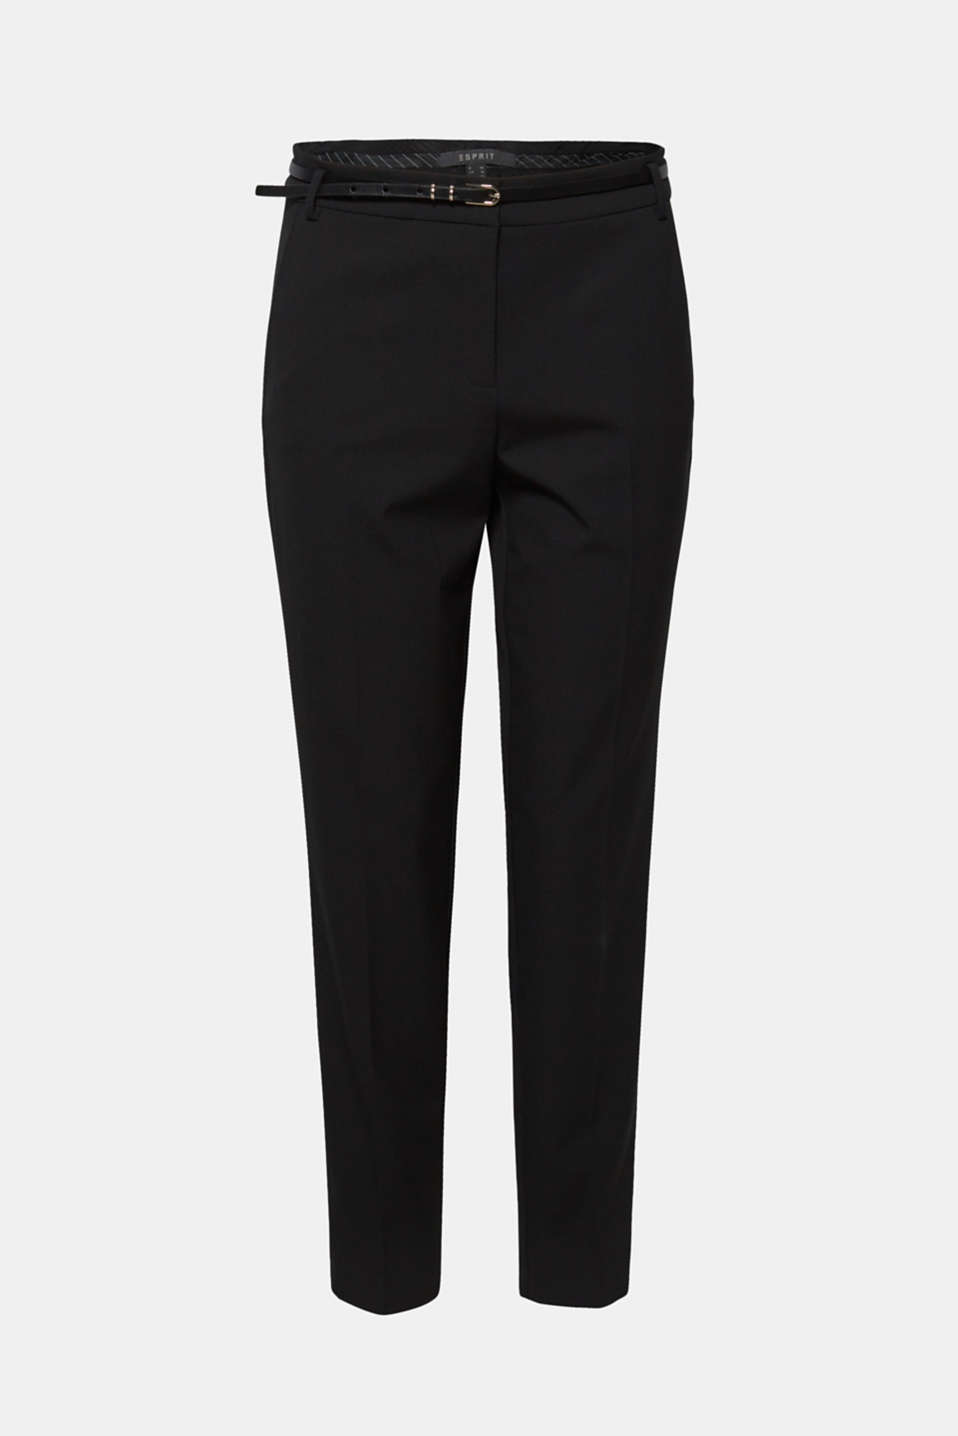 PURE BUSINESS mix + match trousers, BLACK, detail image number 6